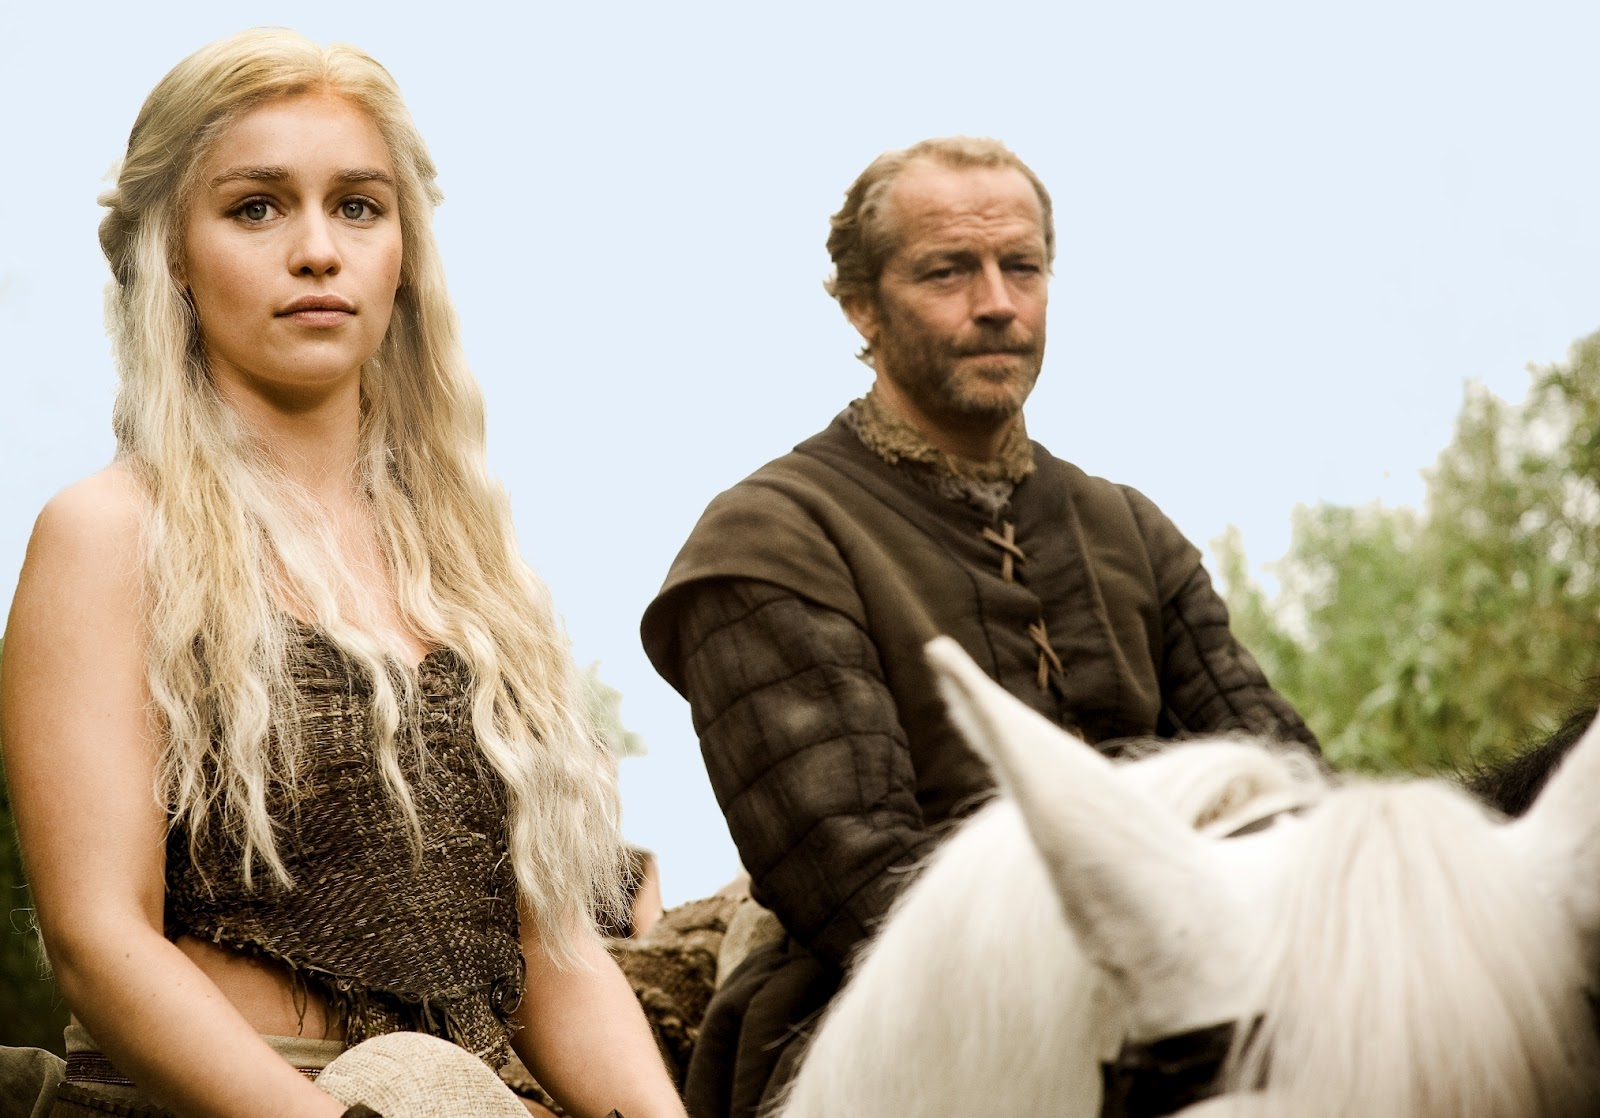 http://3.bp.blogspot.com/-0dMZZGhziDI/T6JADYkJIdI/AAAAAAAAB8w/VezNkTR_We8/s1600/Daenerys-Ser-Jorah-game-of-thrones-picture.jpg